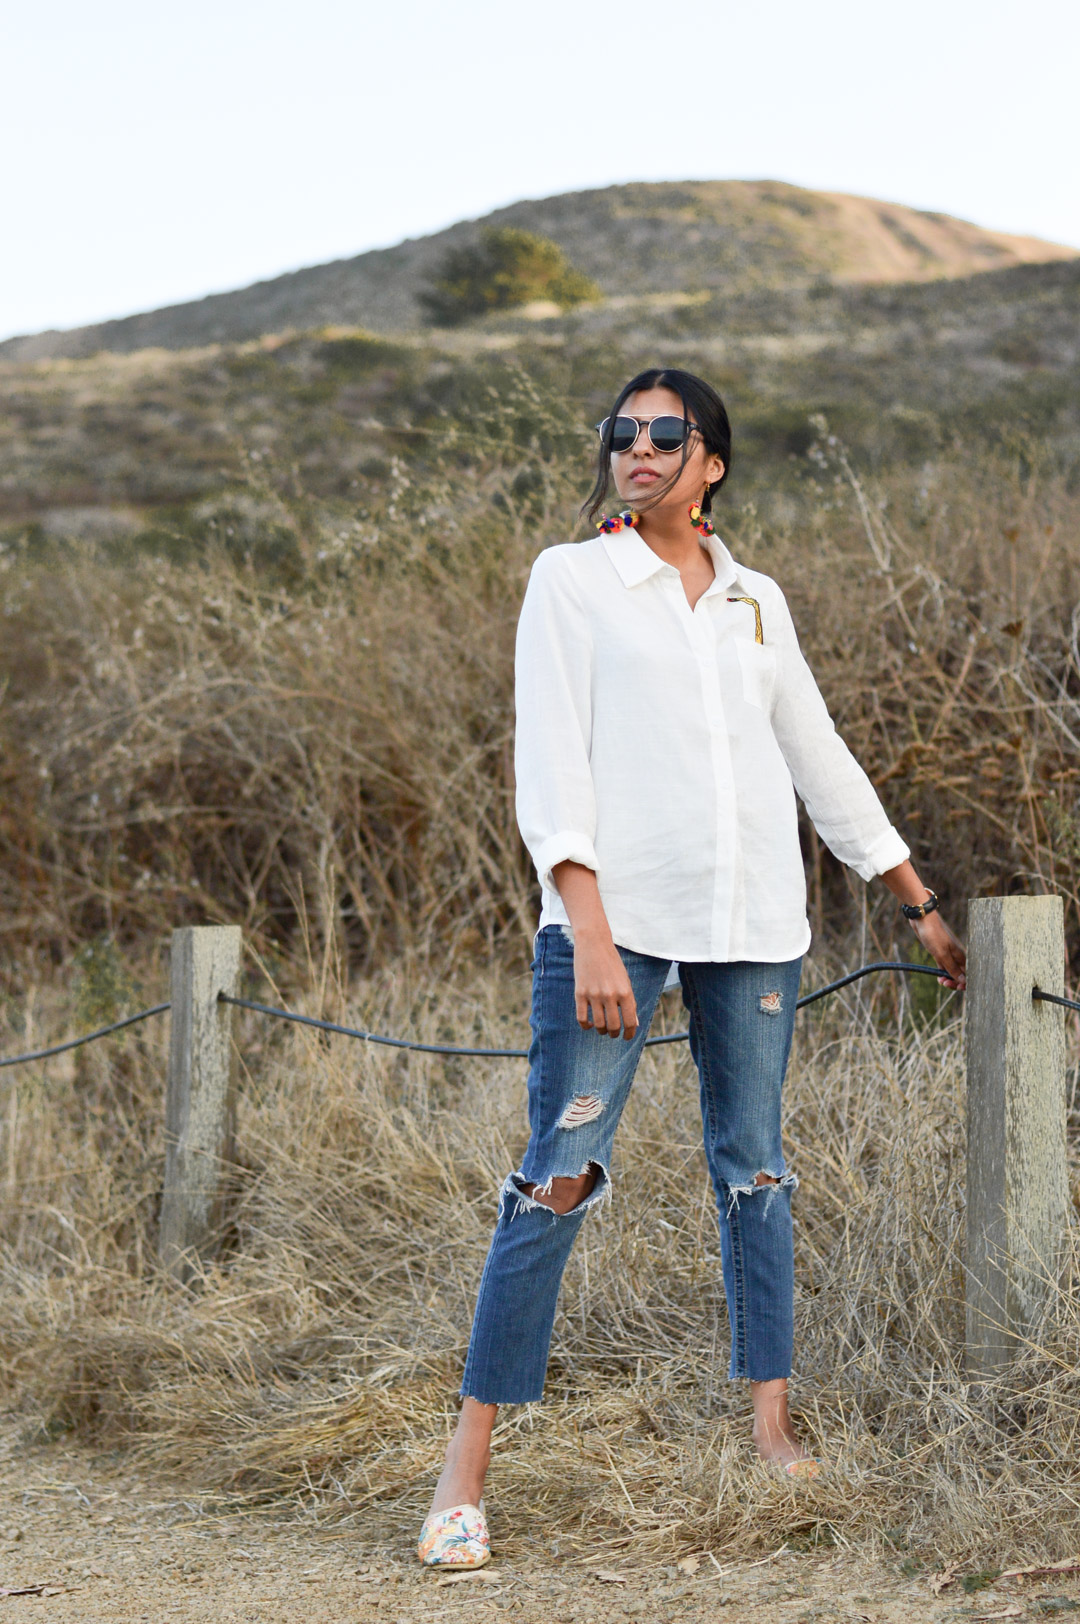 indian-summer-embroidered-white-shirt-statement-accessories-blogger-outfit 3